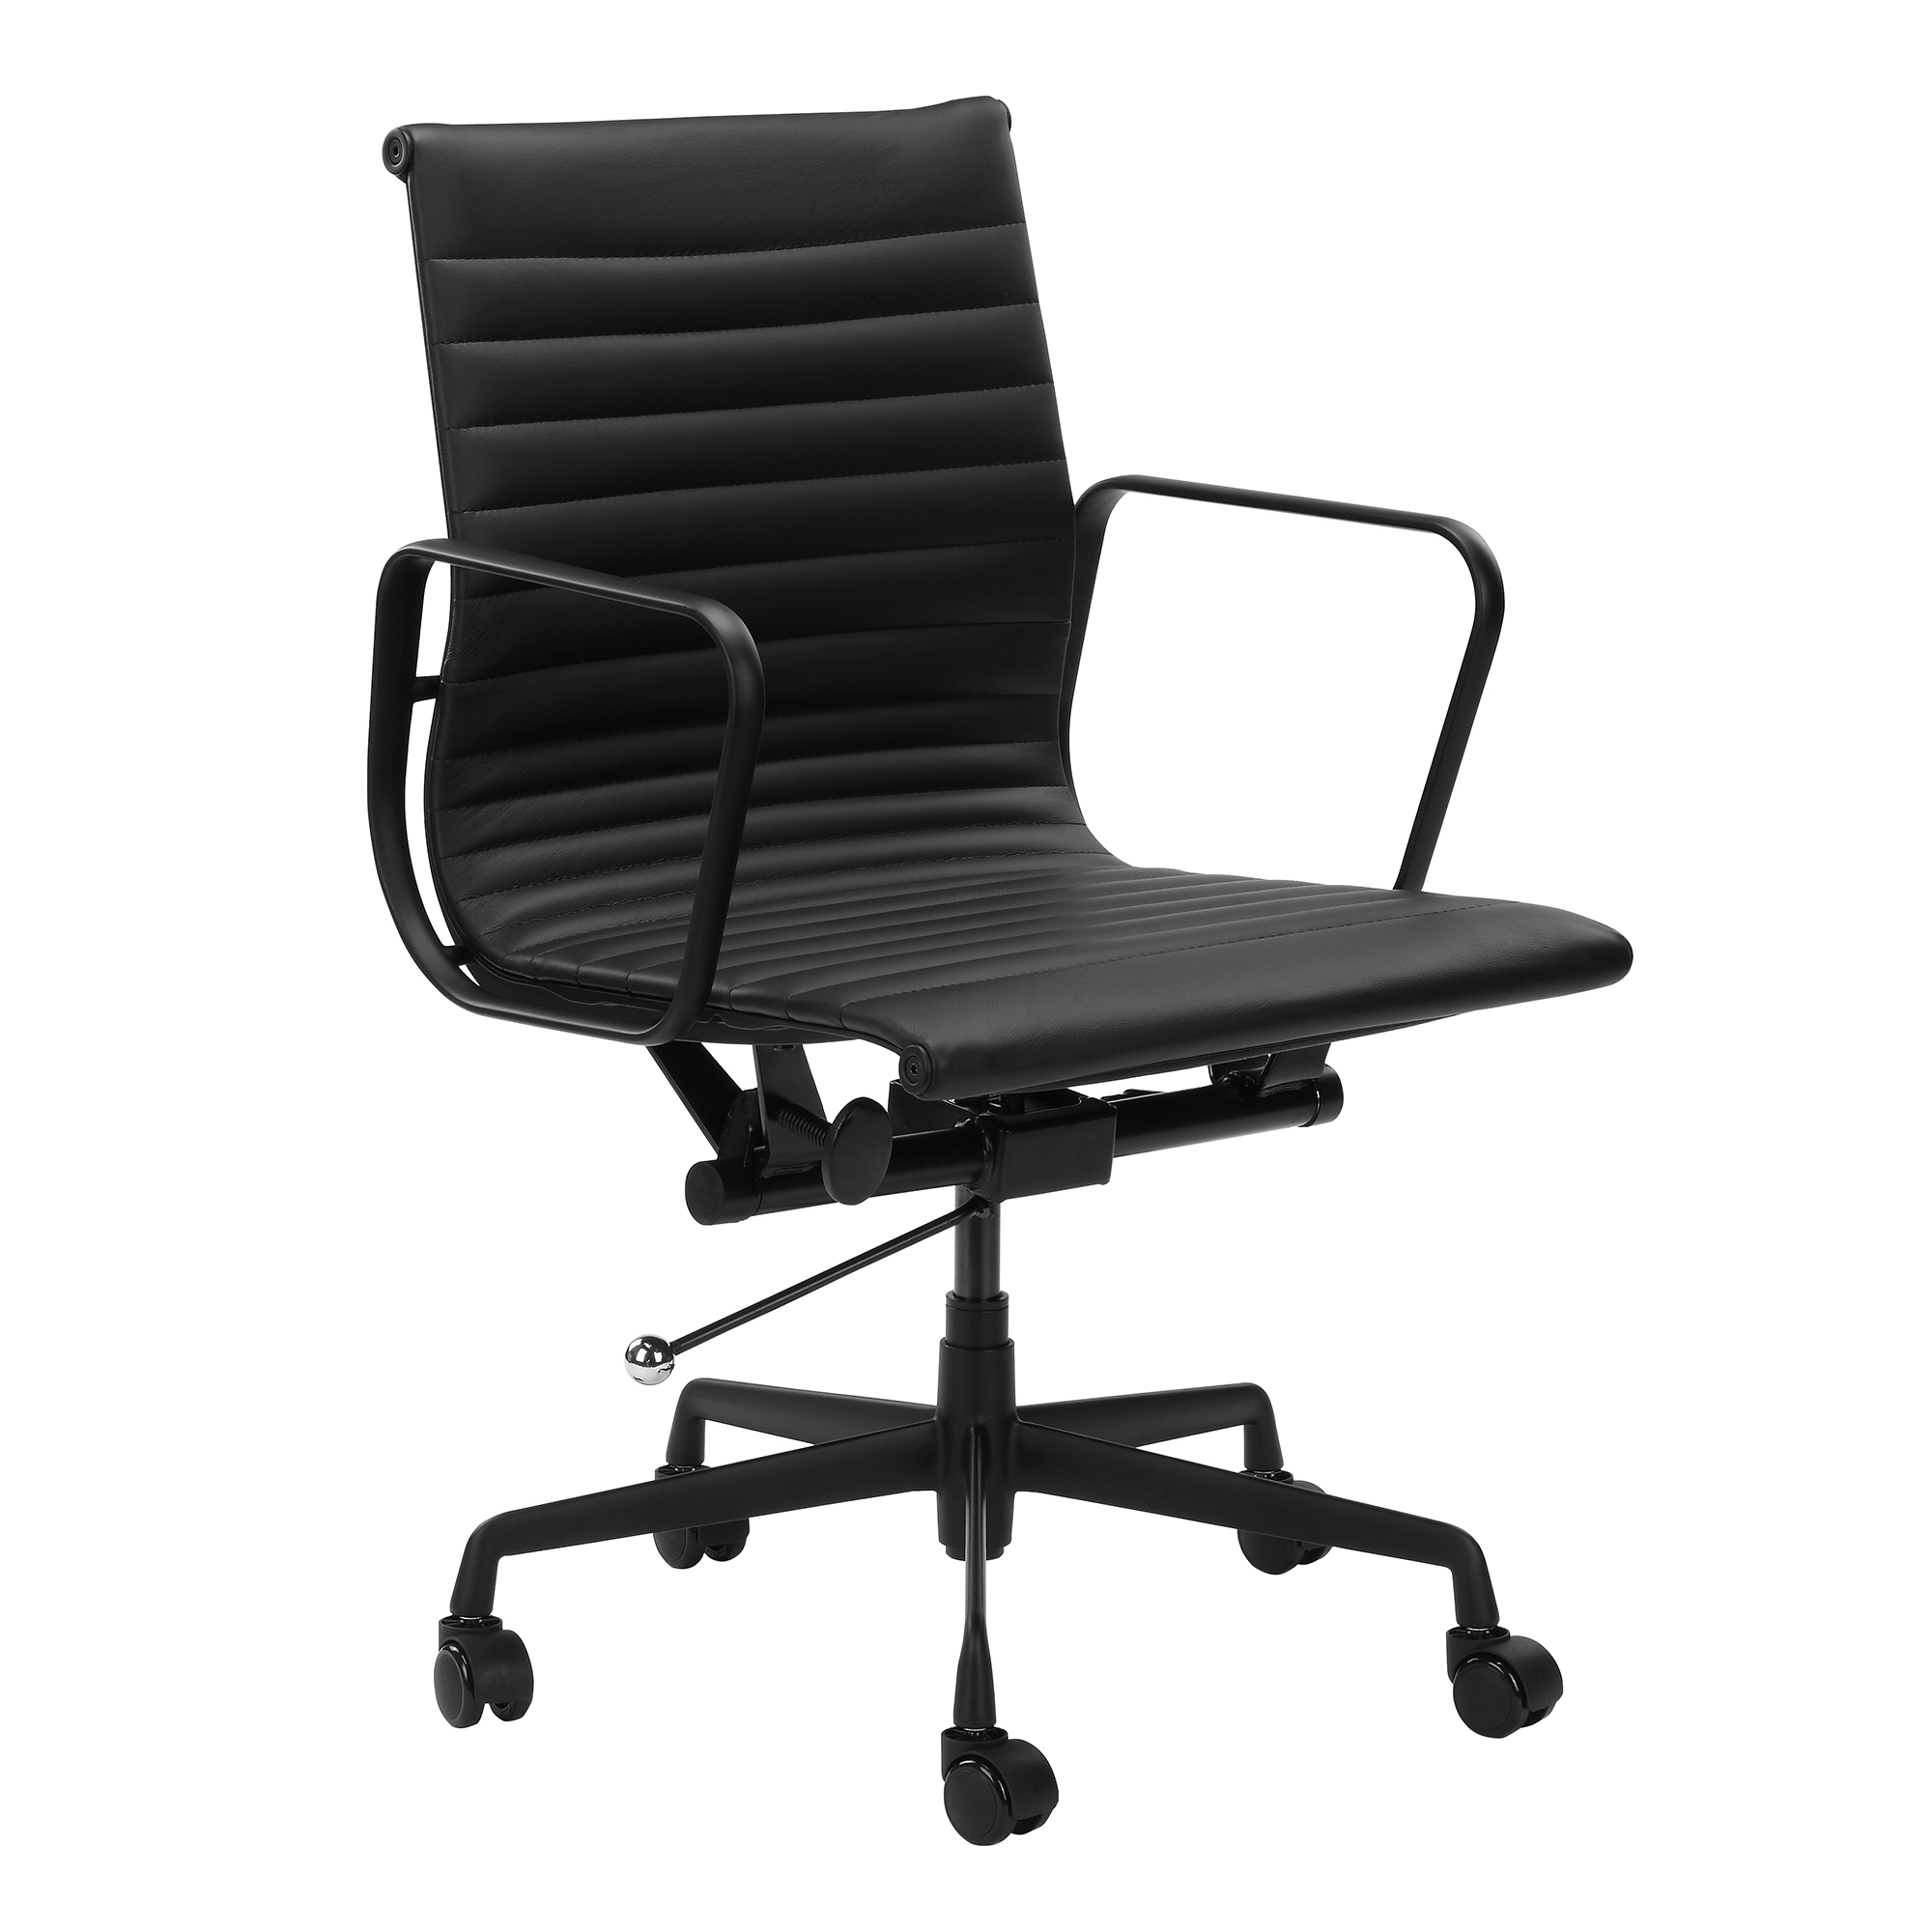 Stealth Executive Boardroom Chair (Black/Black)